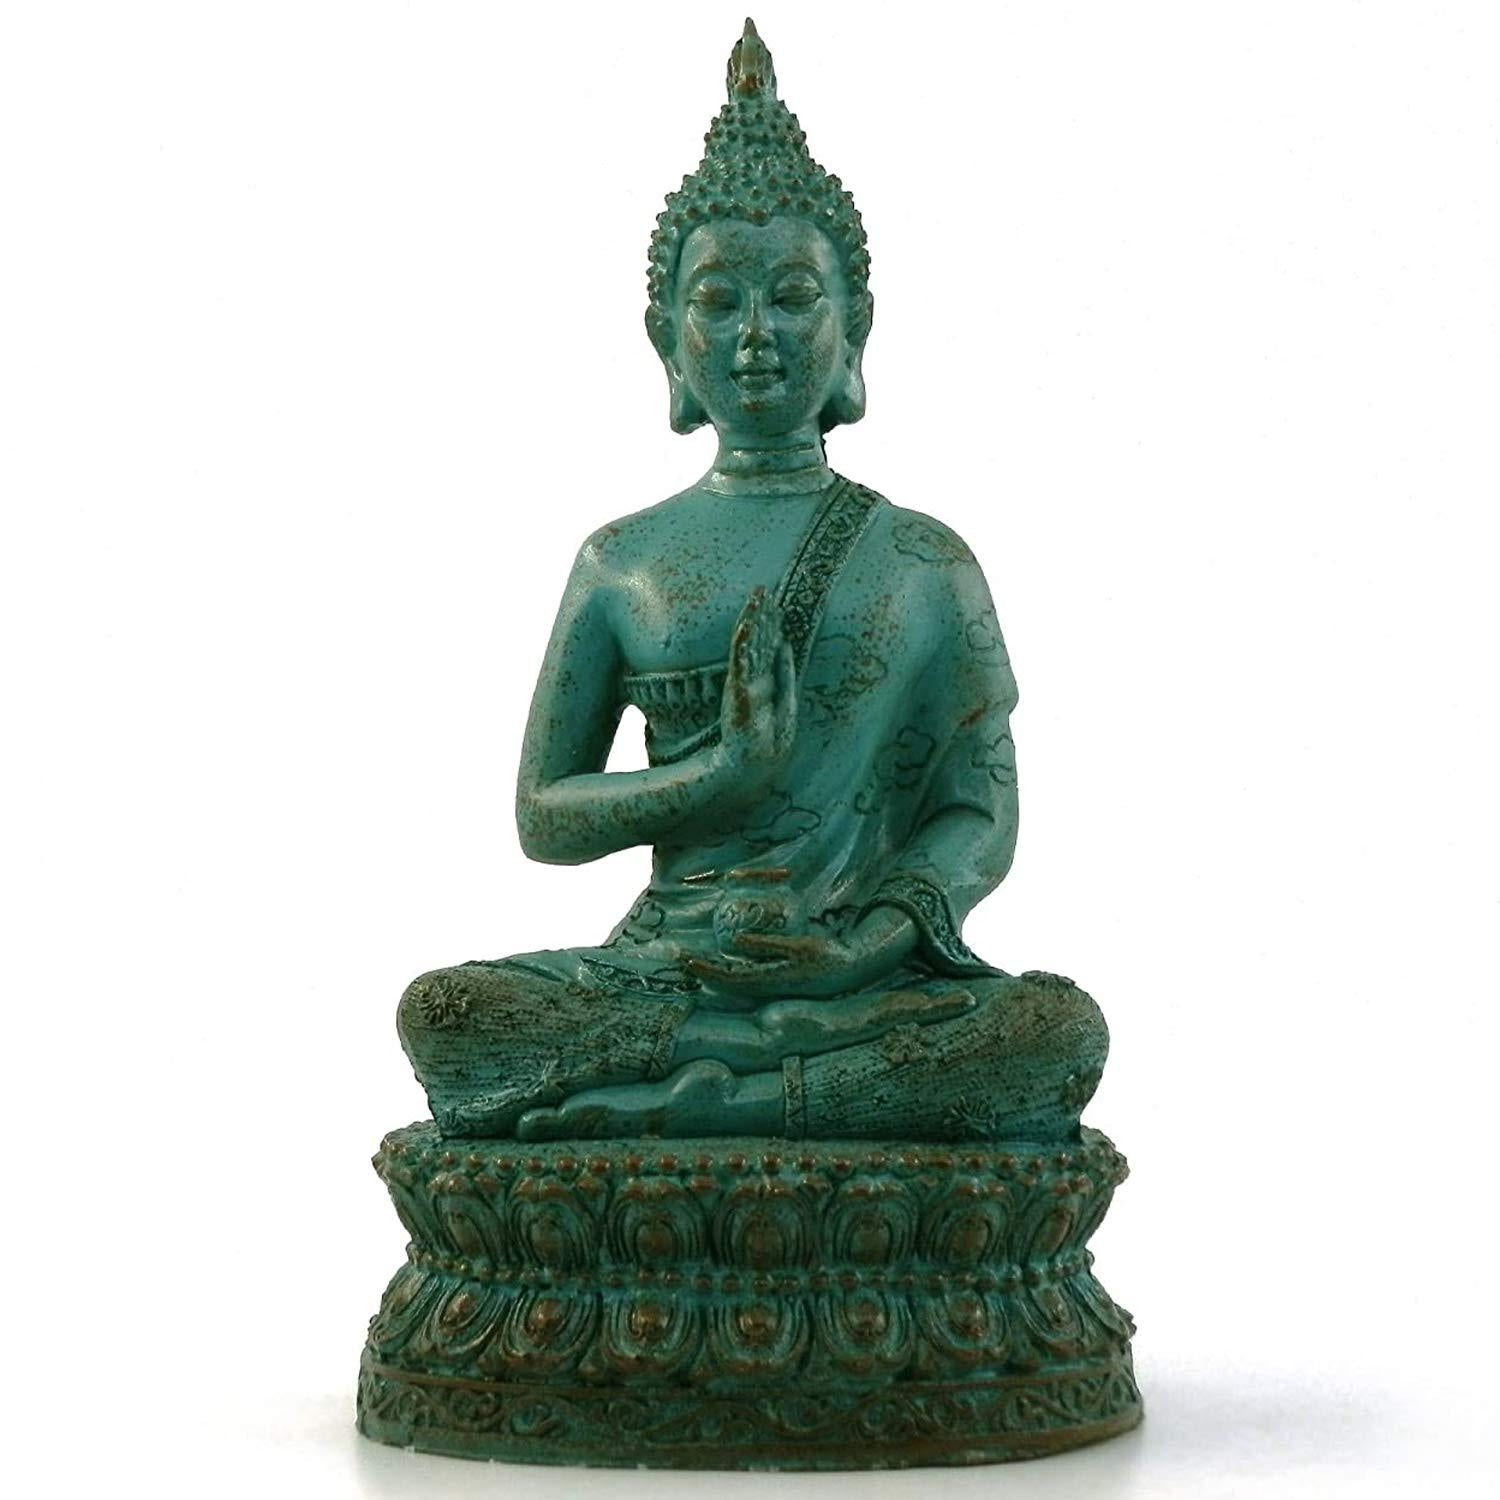 Ornerx Thai Sitting Buddha Statue for Home Decor Ivory 6.7 @ Sons of Odin™ - Men's Jewelry on Sale,